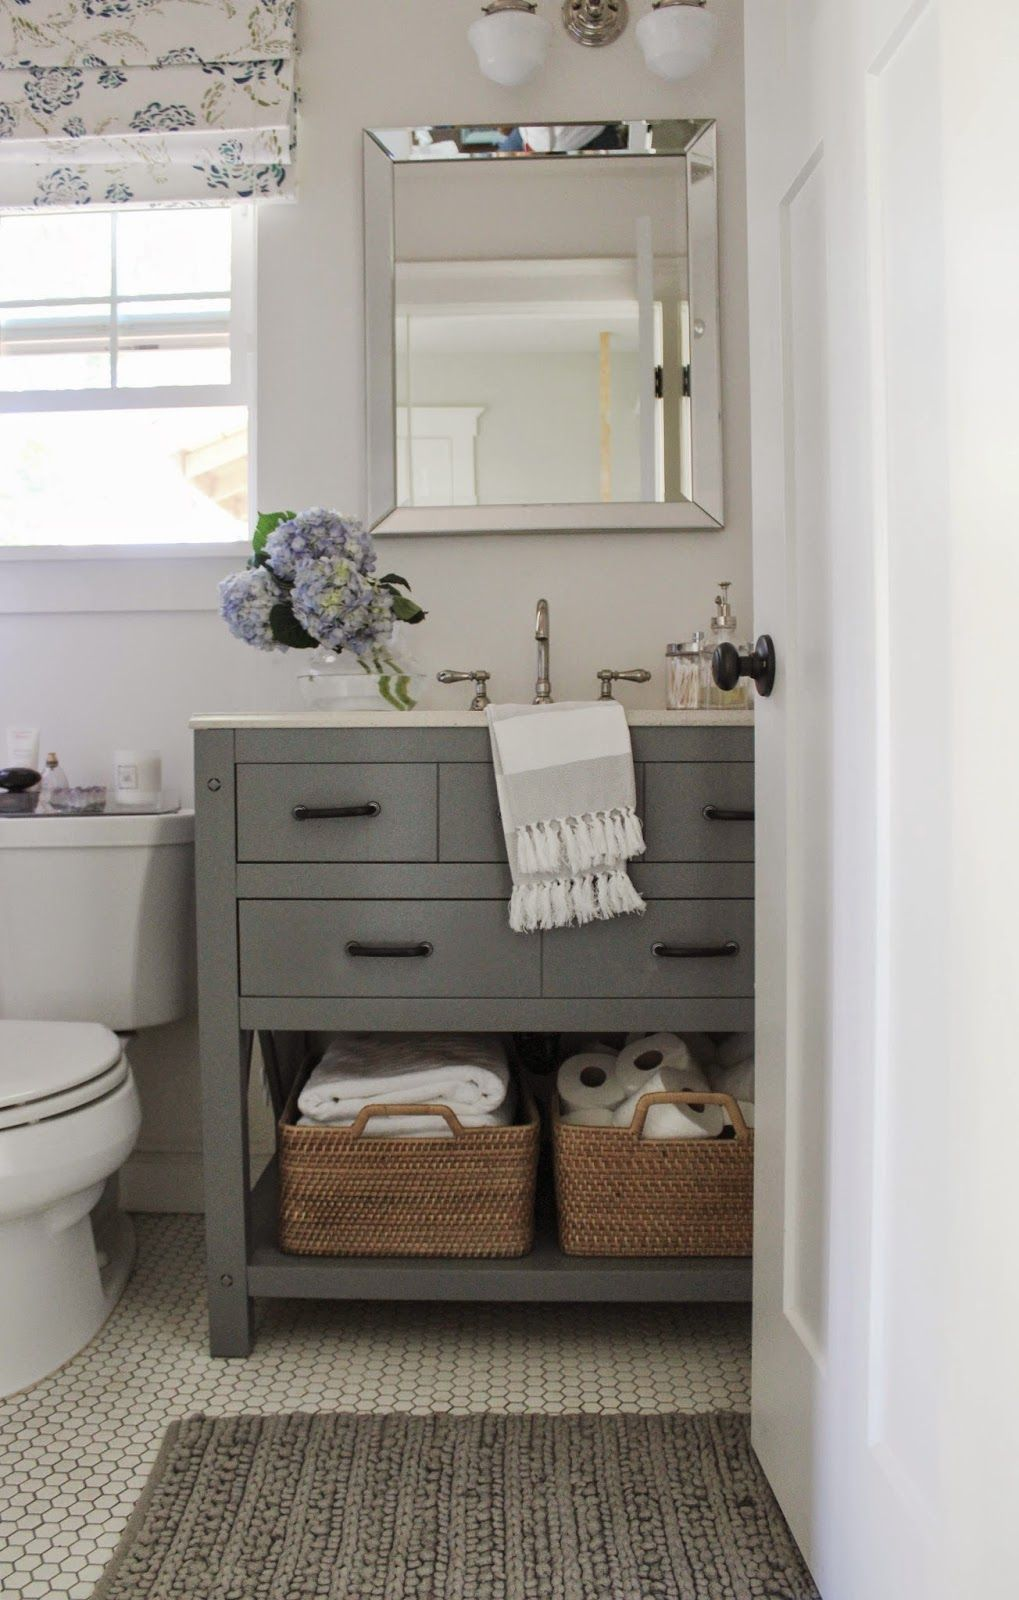 The Home Depot Diy Workshop: Vertical Planter Our Bathroom Vanity Changeup  London Is